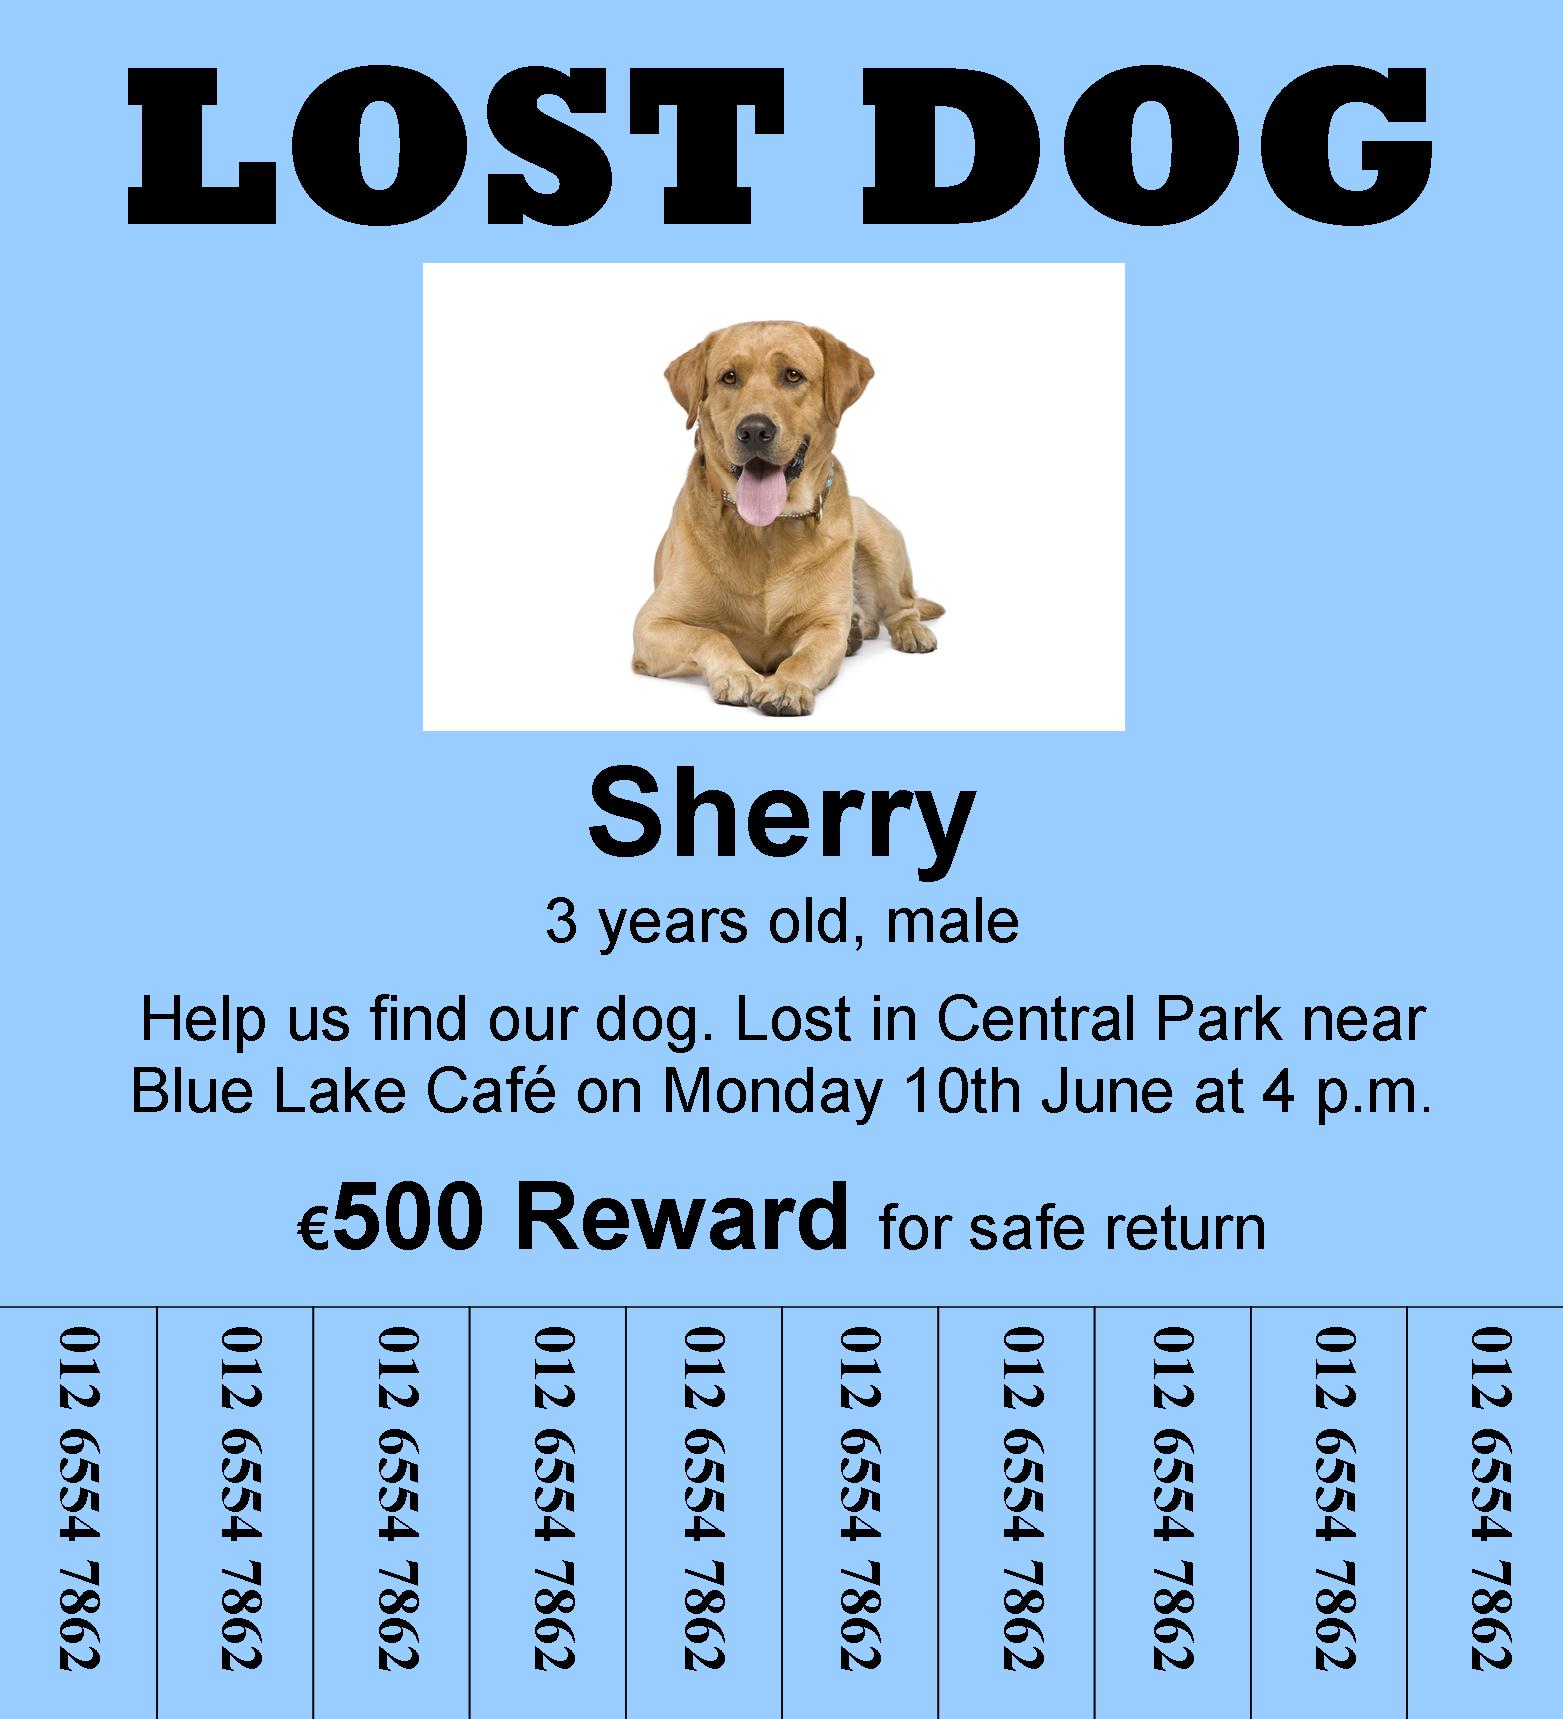 A Lost Dog Learnenglish Teens